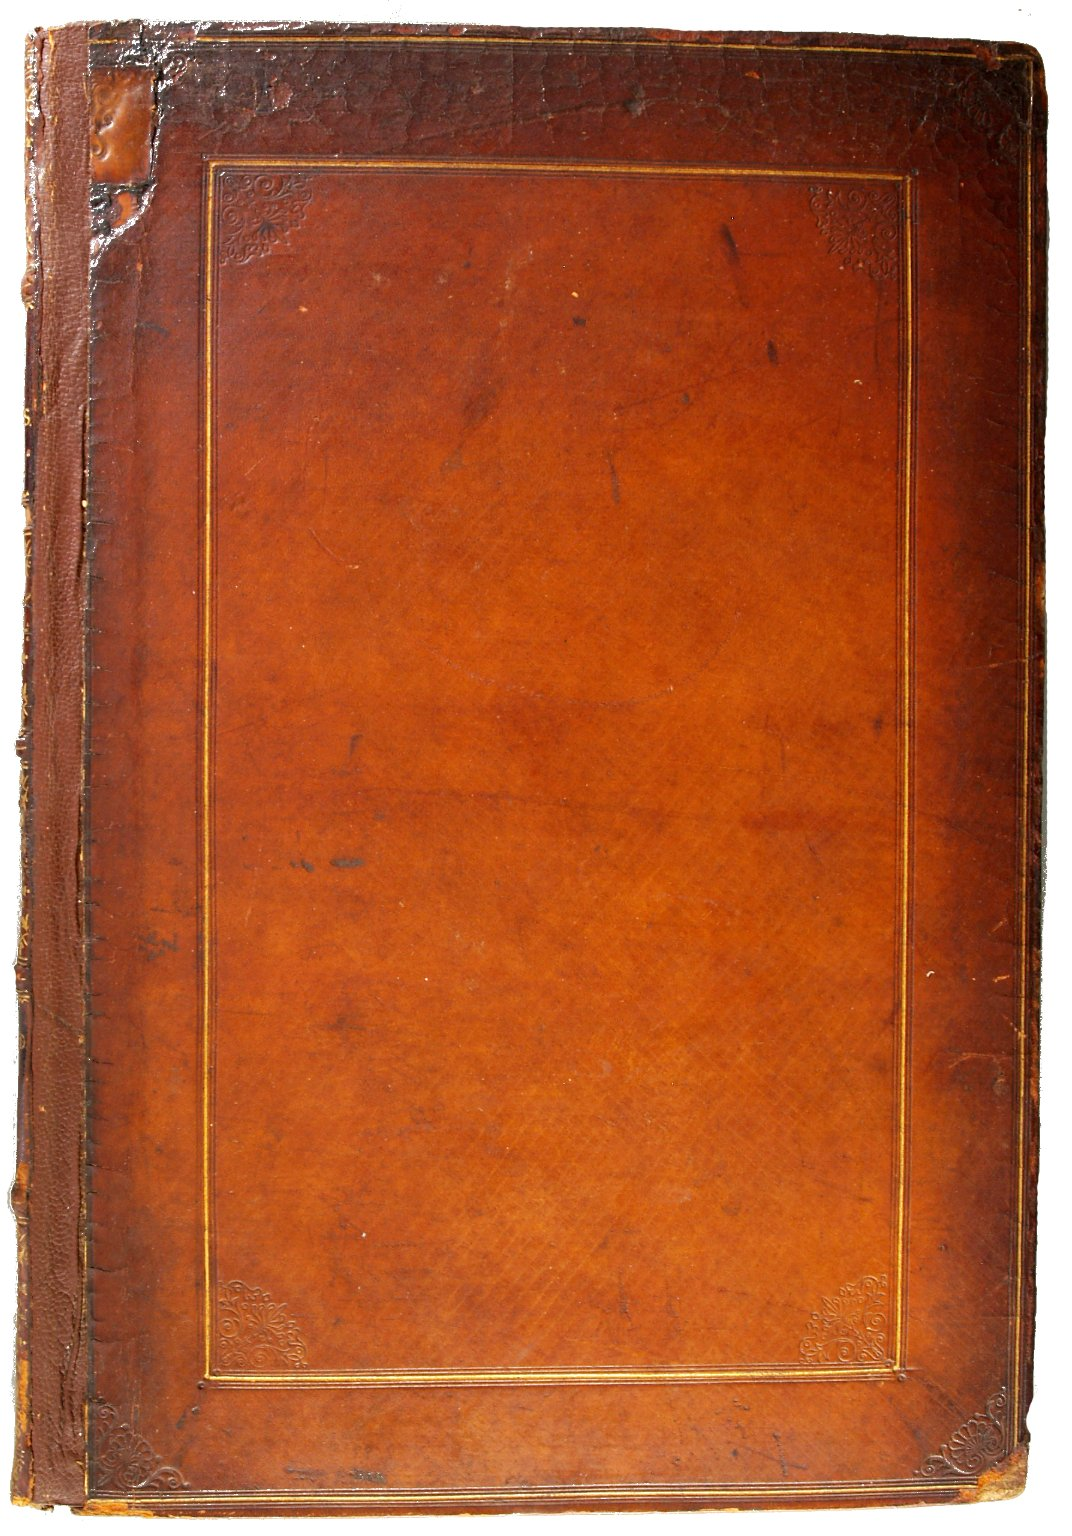 Front cover, STC 3178 copy 3.